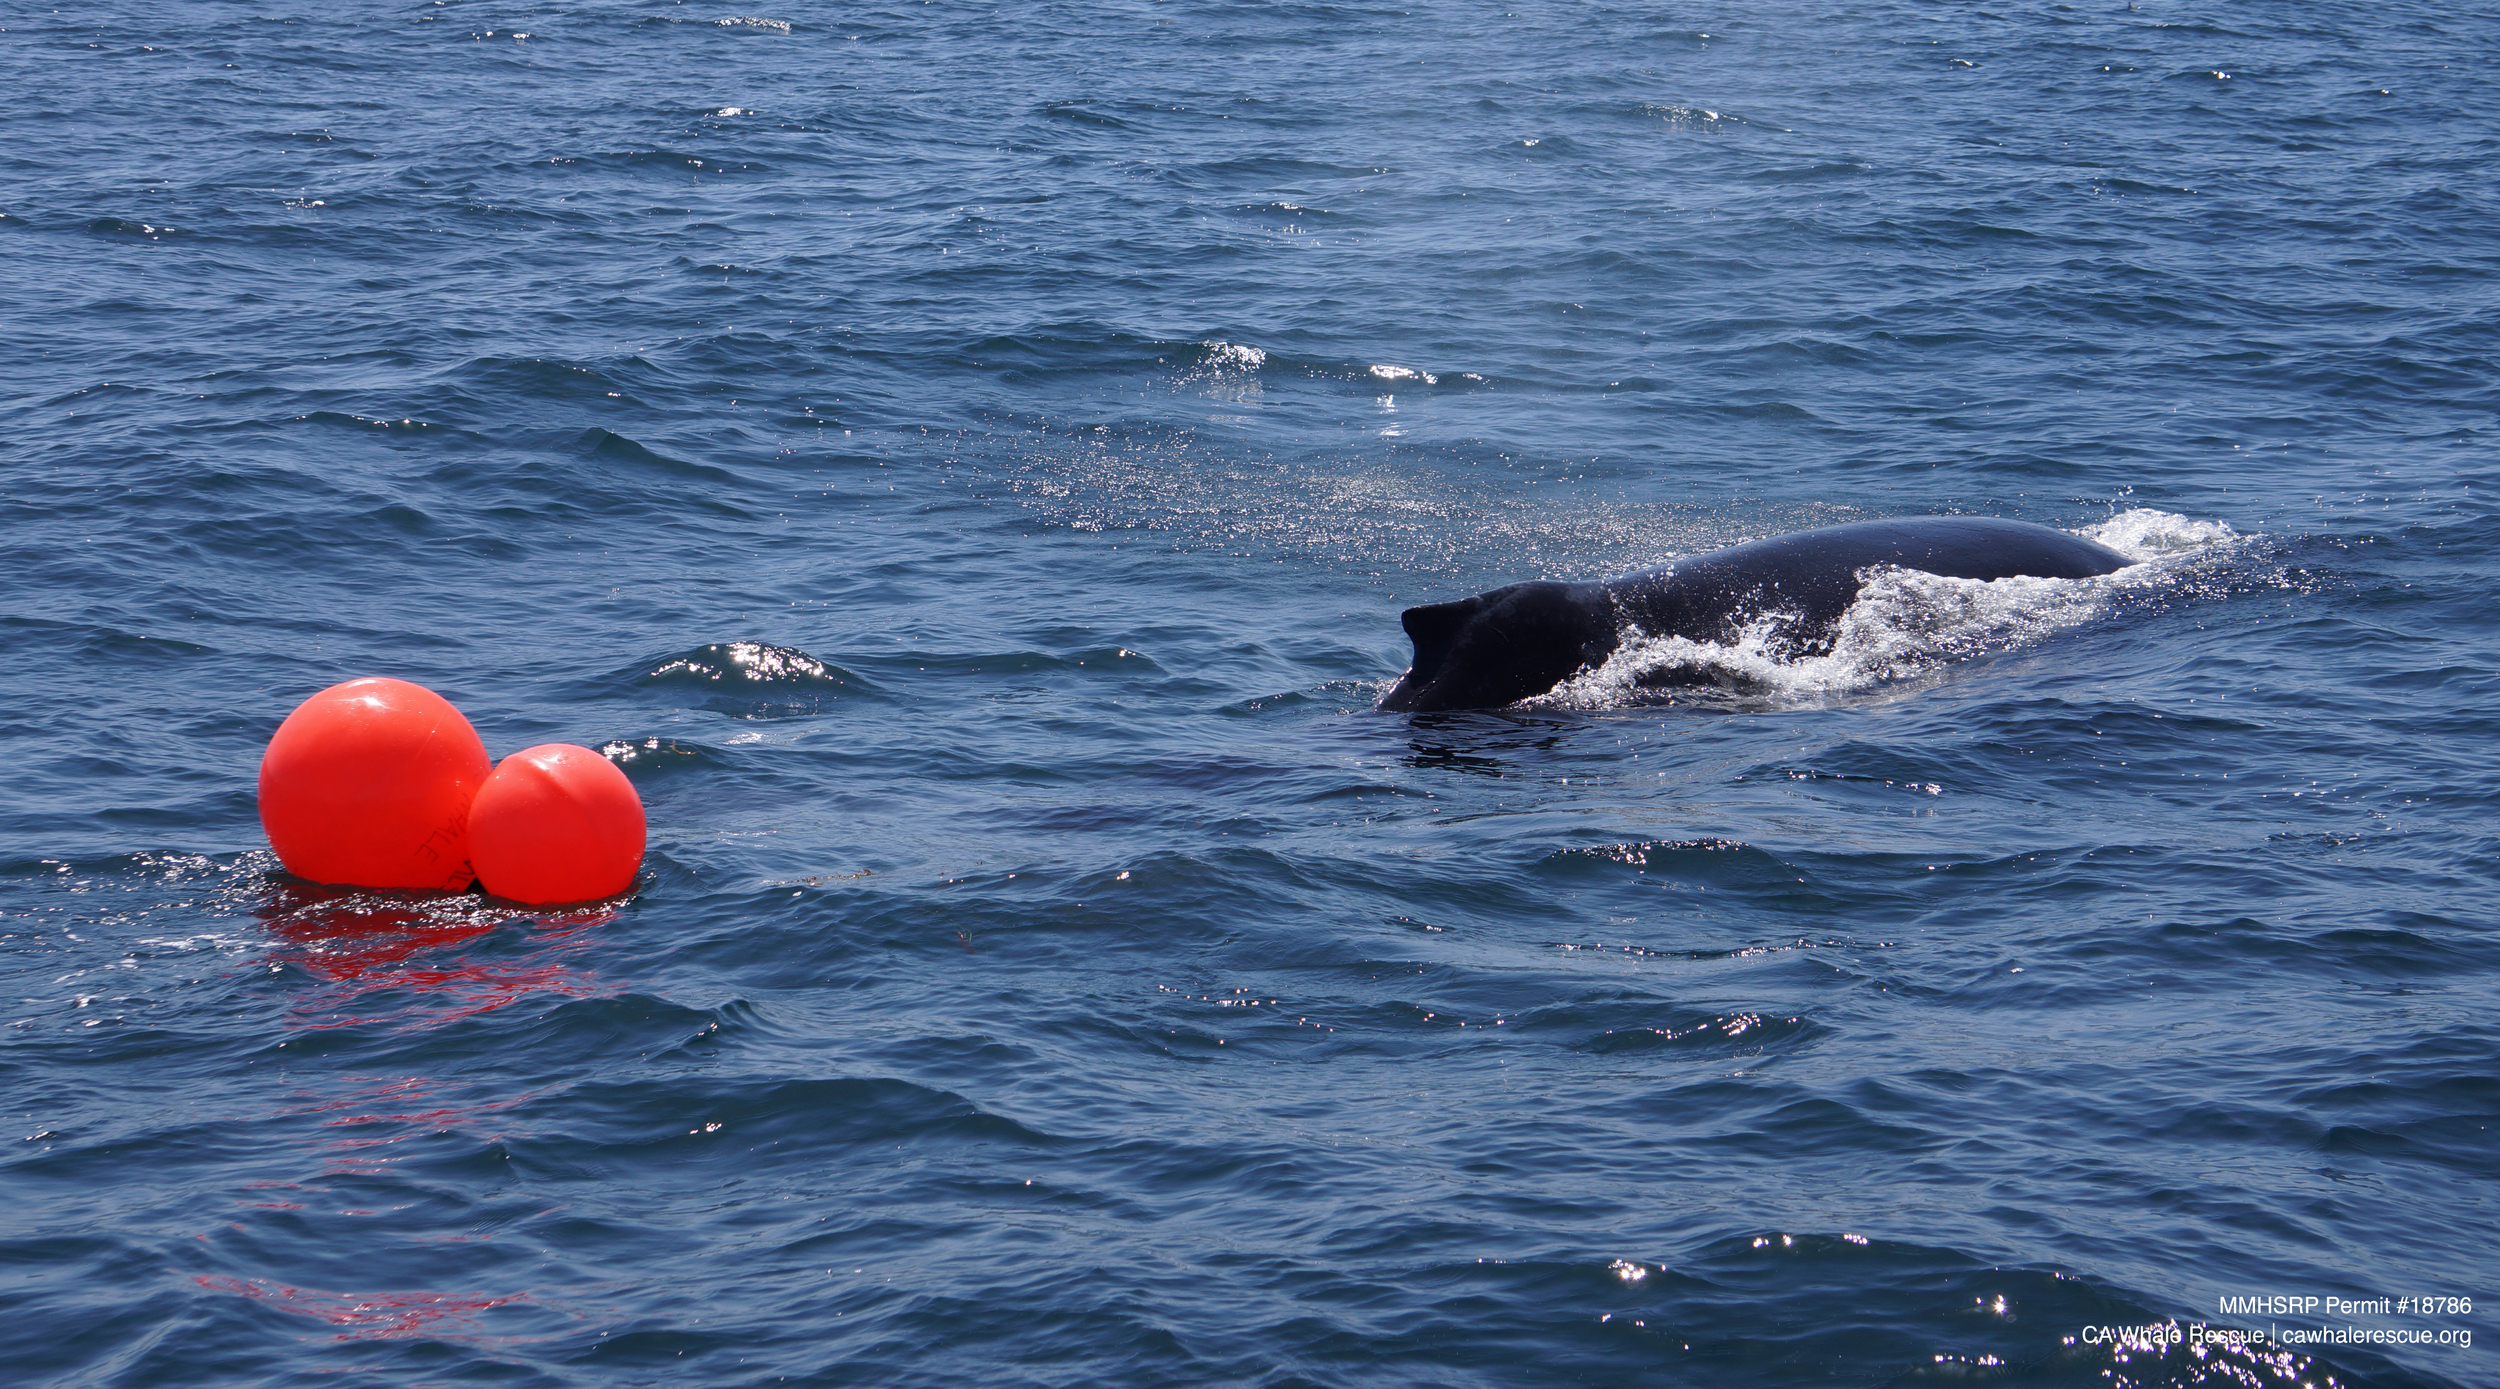 Humpback whales are darker in color, have long pectoral flippers and a more pronounced dorsal fin than gray whales.